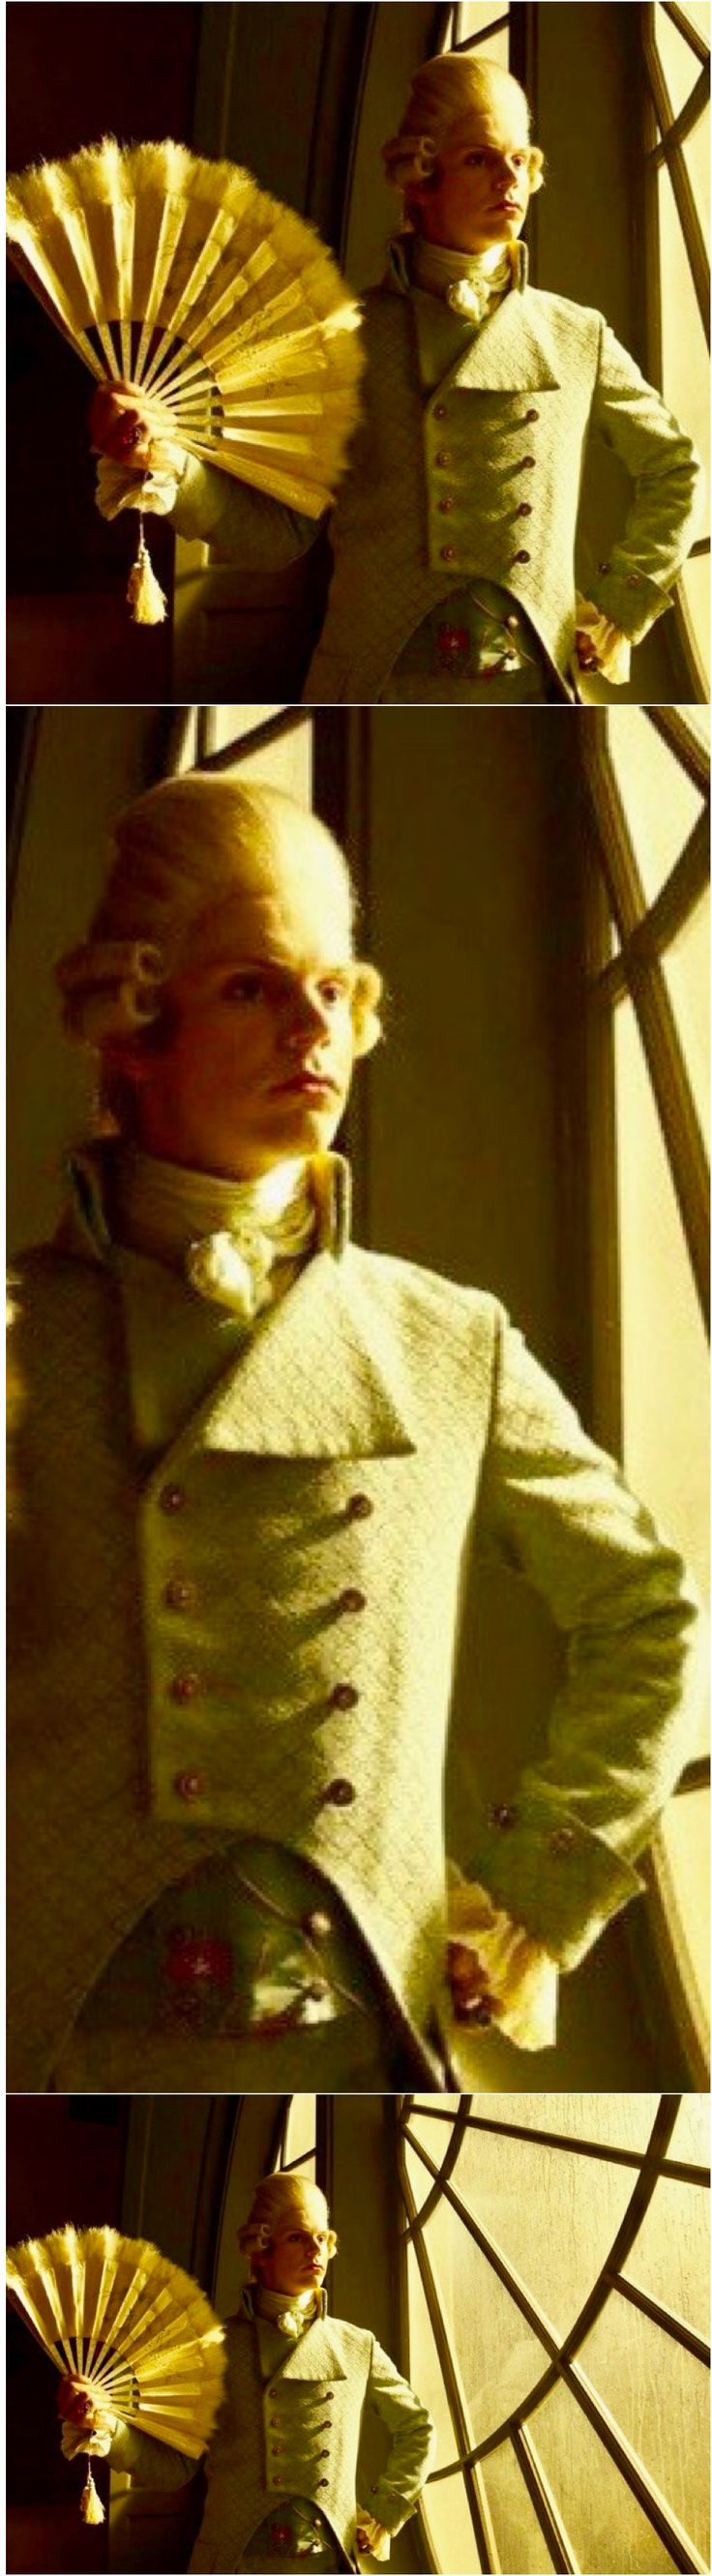 NEW Unreleased Promotional Still of Evan Peters as Edward Philippe Mott in American Horror Story: My Roanoke Nightmare. | Follow rickysturn/evan-peters for the latest EP news and Pins